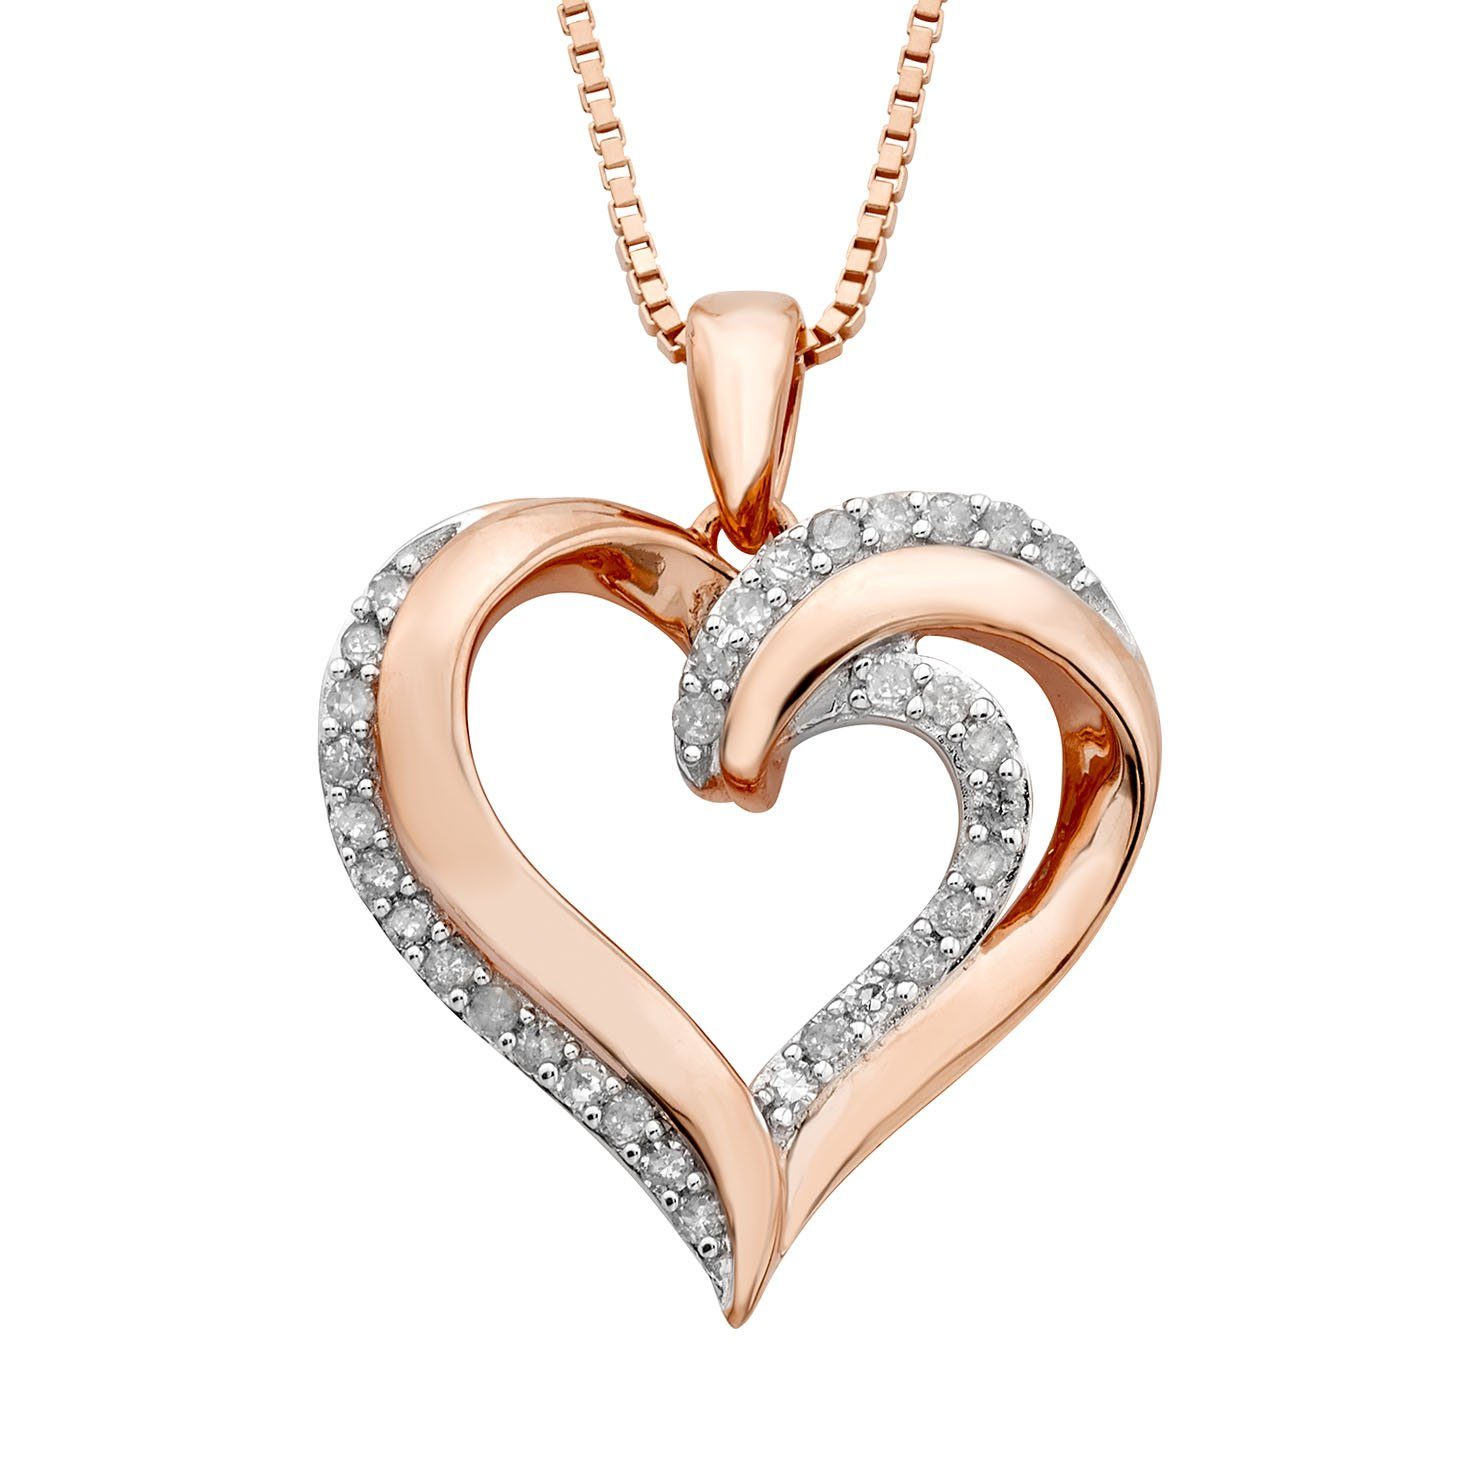 1/4 Carat Diamond Heart Pendant in Rose Gold-Plated Sterling Silver - 18""